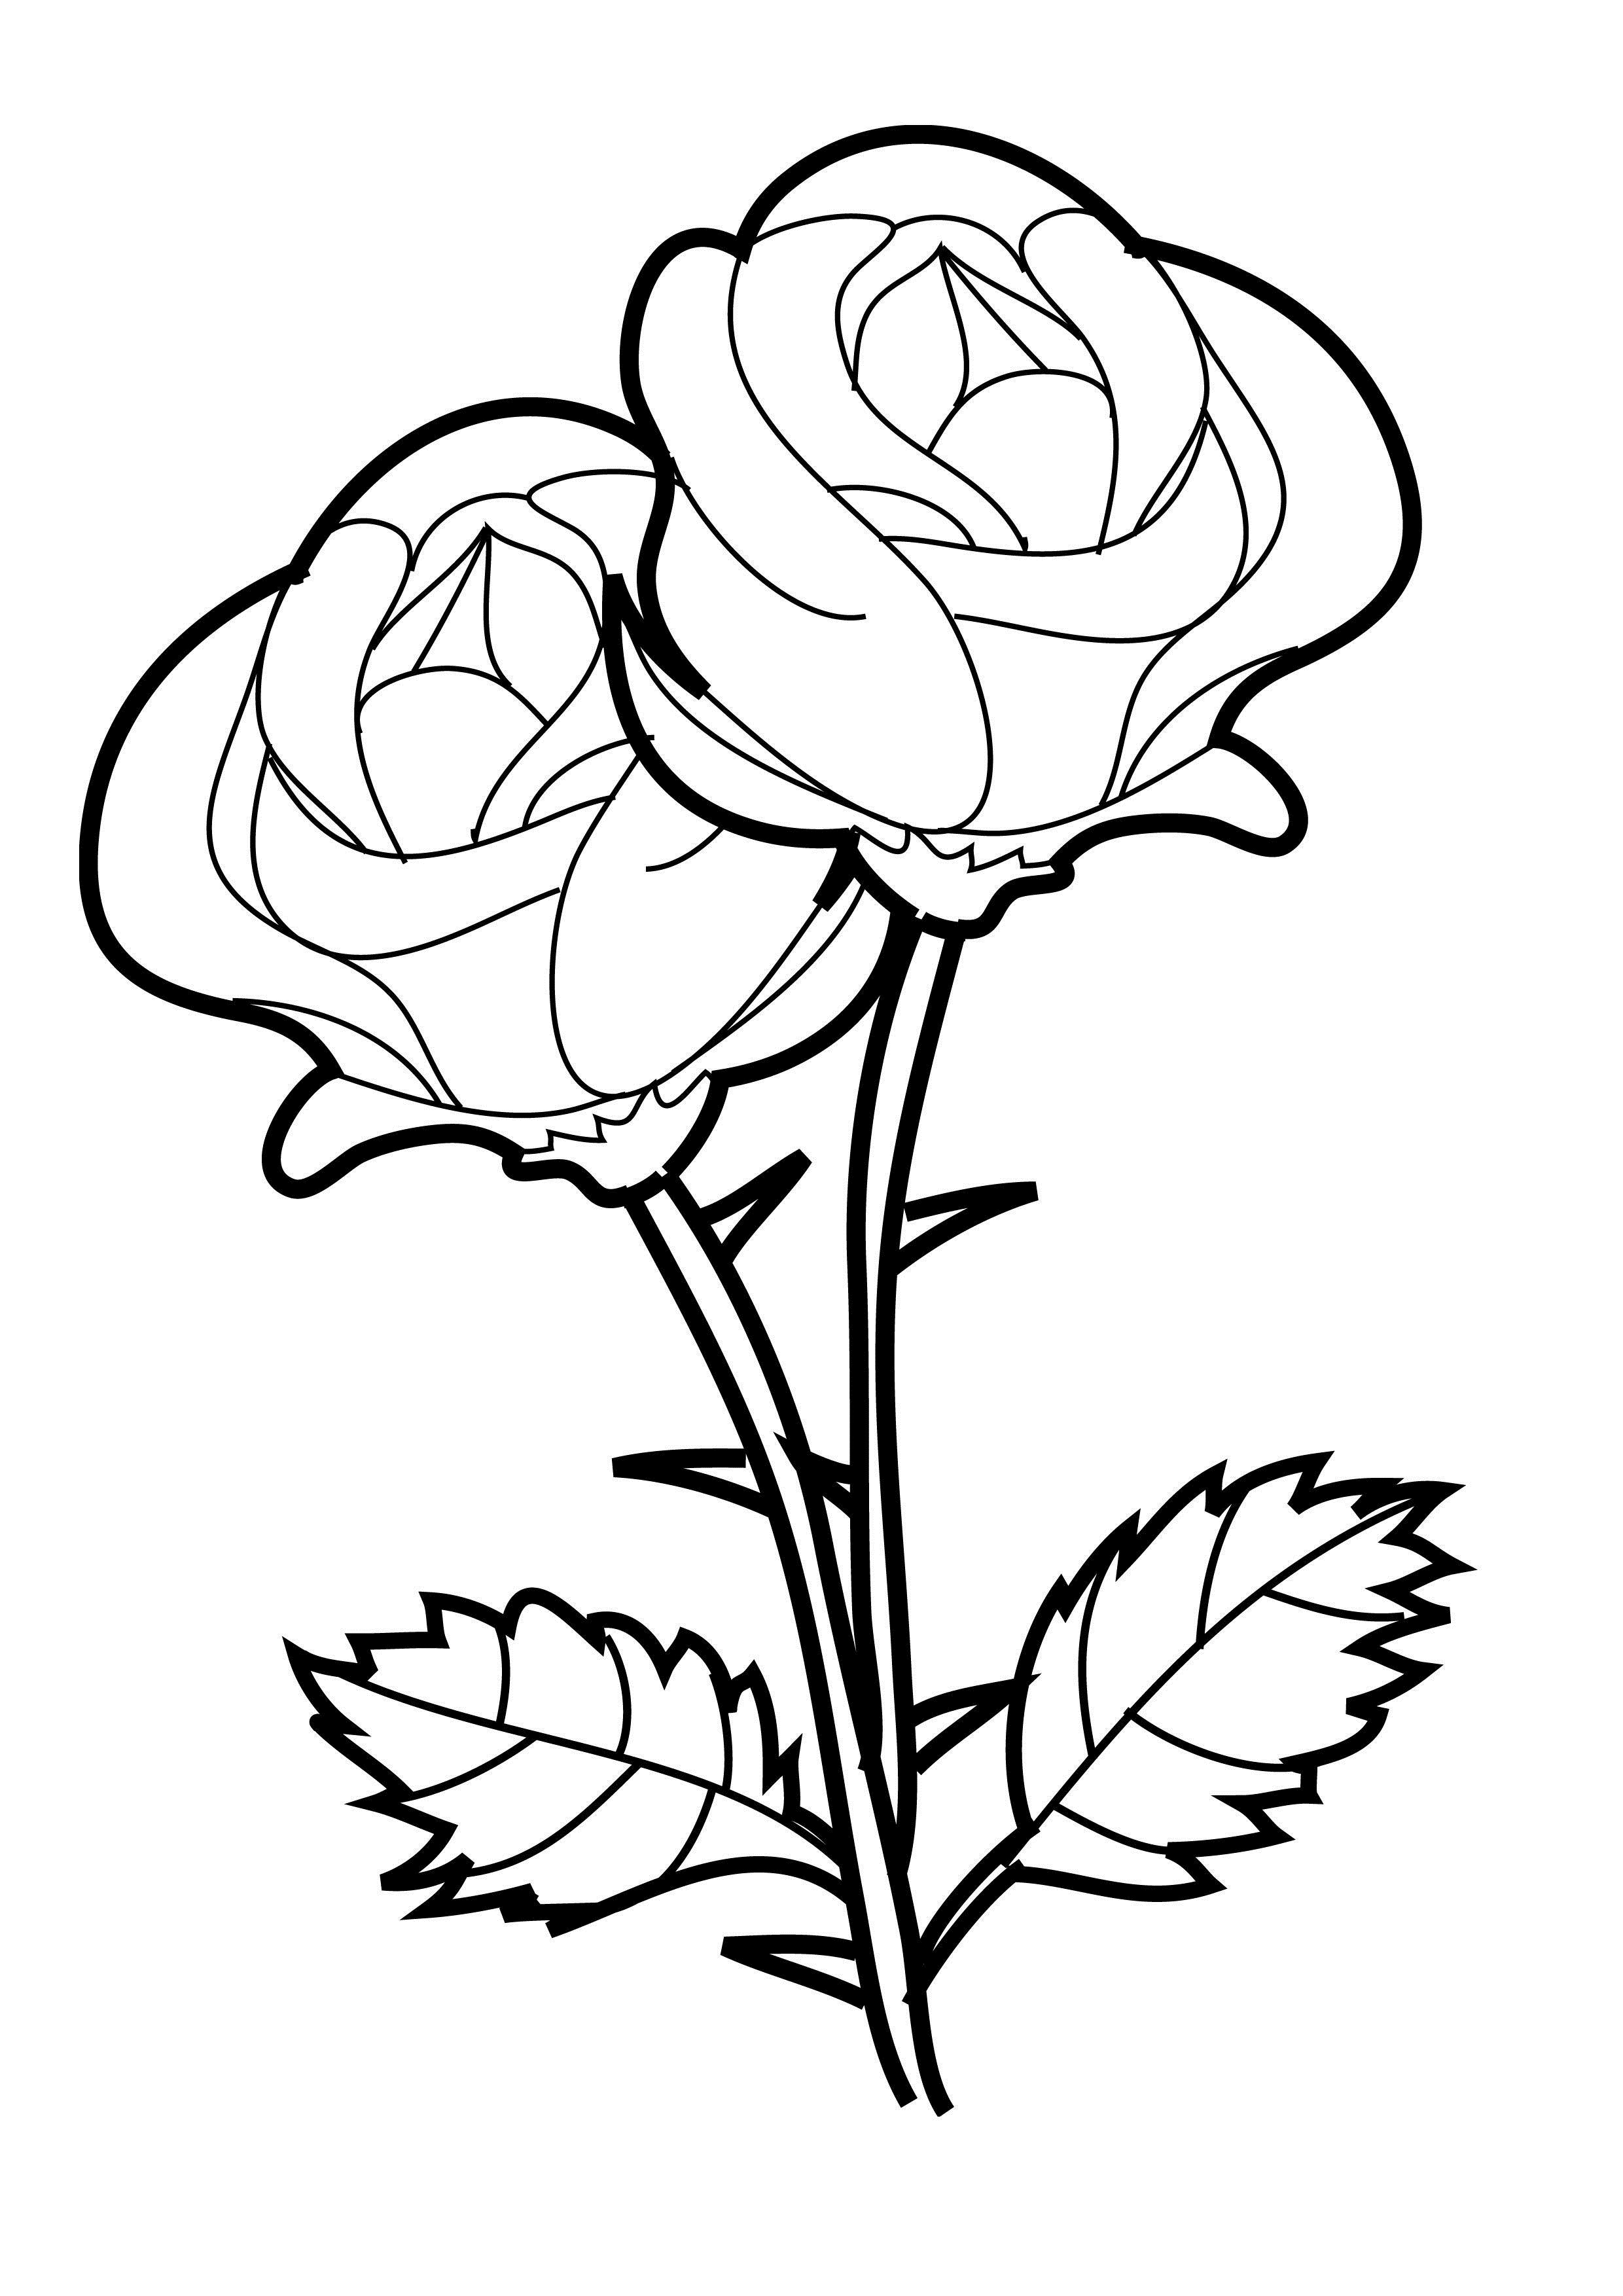 rose colouring pages roses coloring pages to download and print for free colouring pages rose